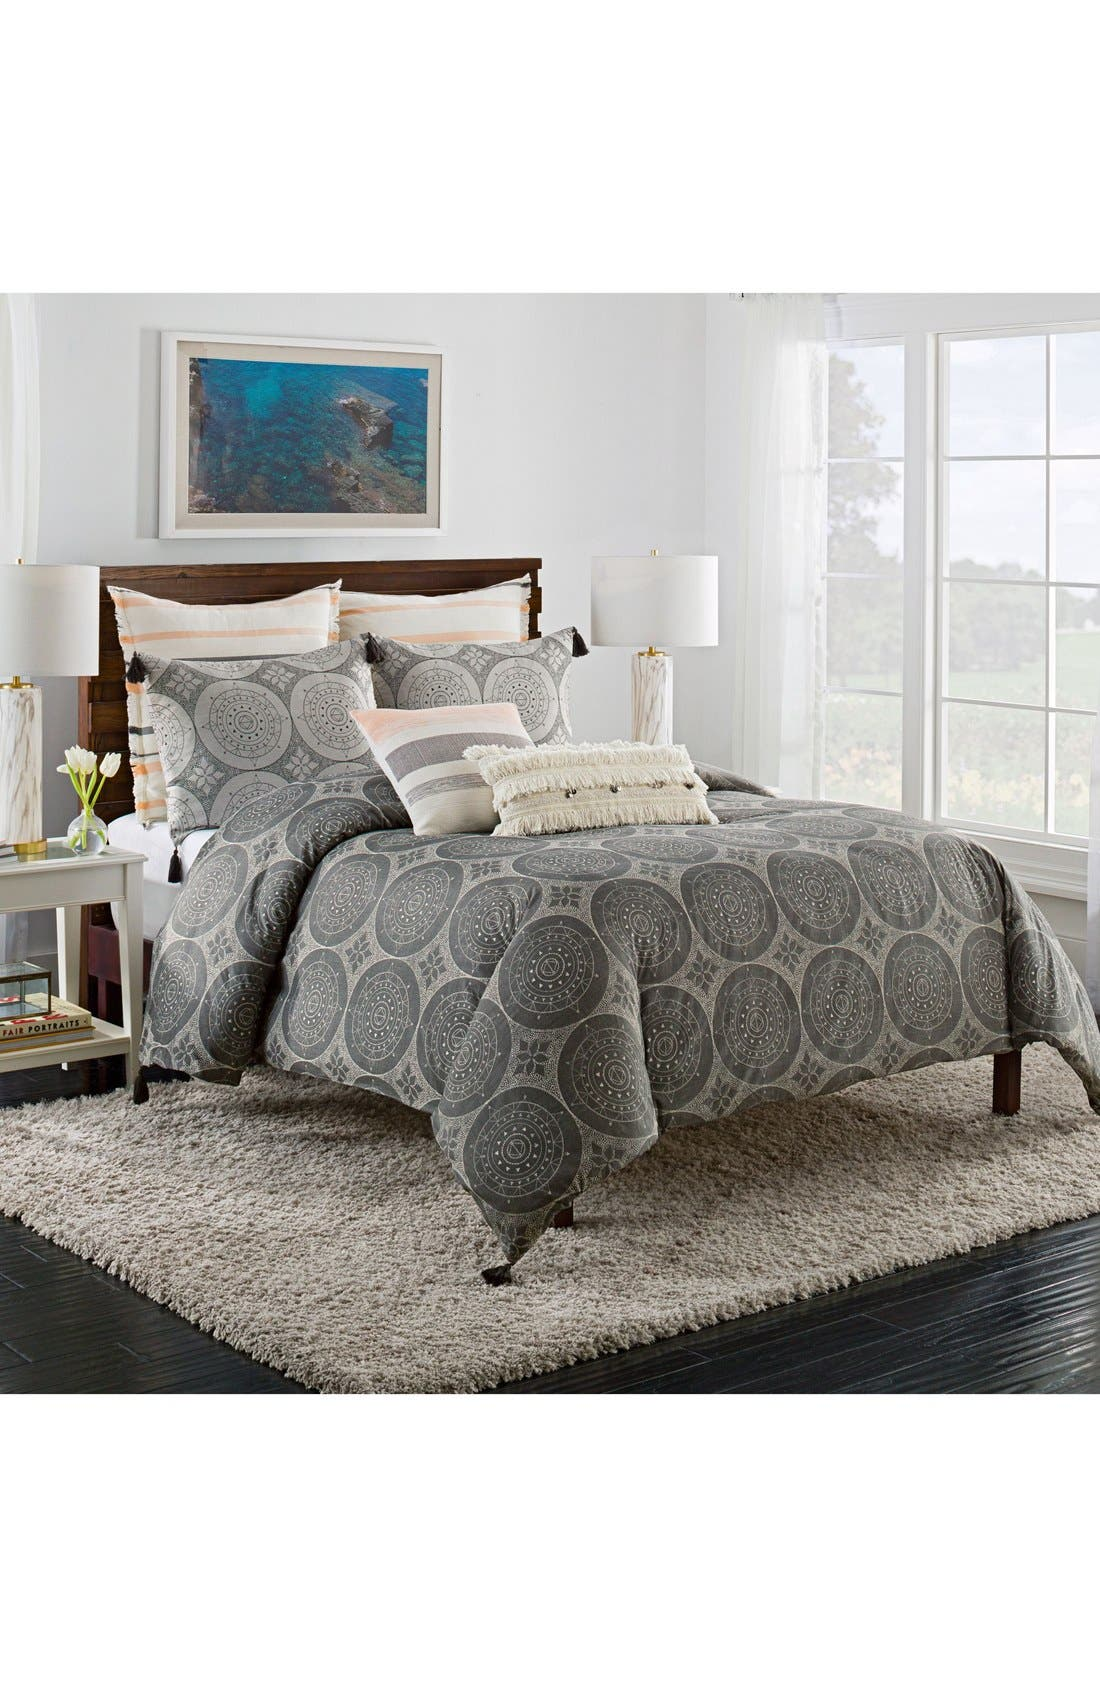 Dotted Medallion Duvet Cover,                             Main thumbnail 1, color,                             020